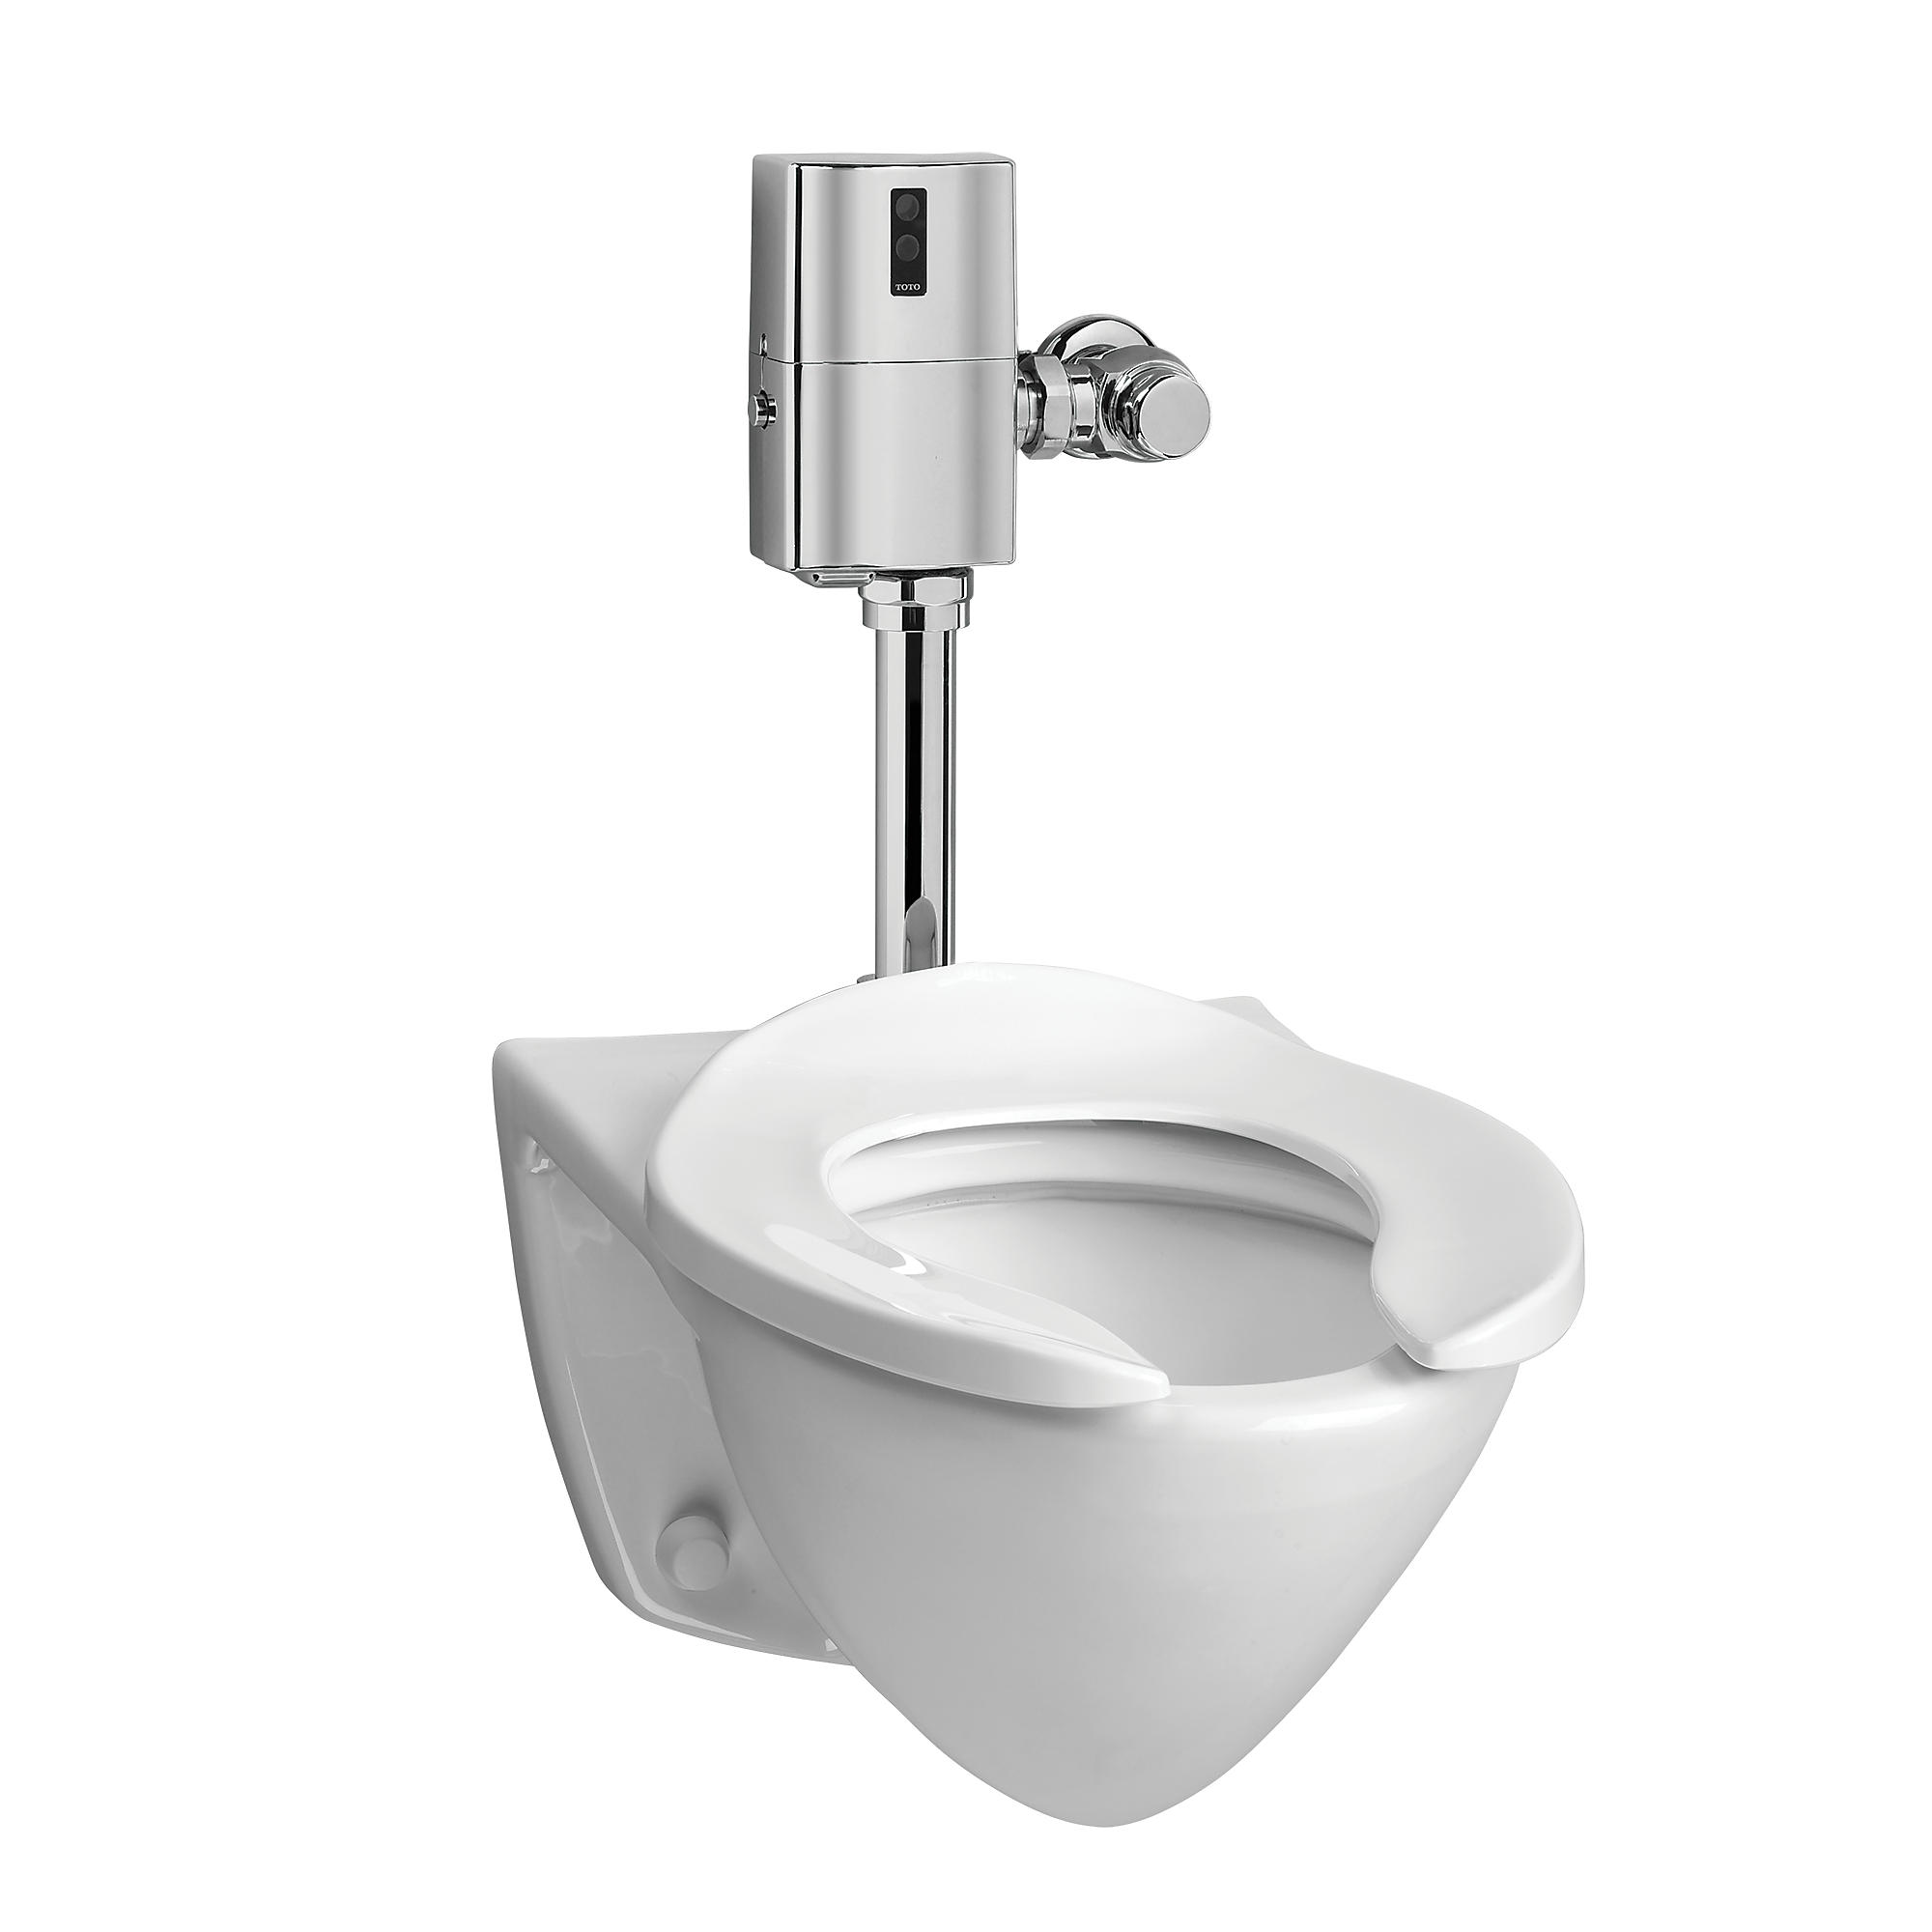 Ct708e 01 commercial flushometer high efficiency toilet  1 28 gpf  elongated bowl 0